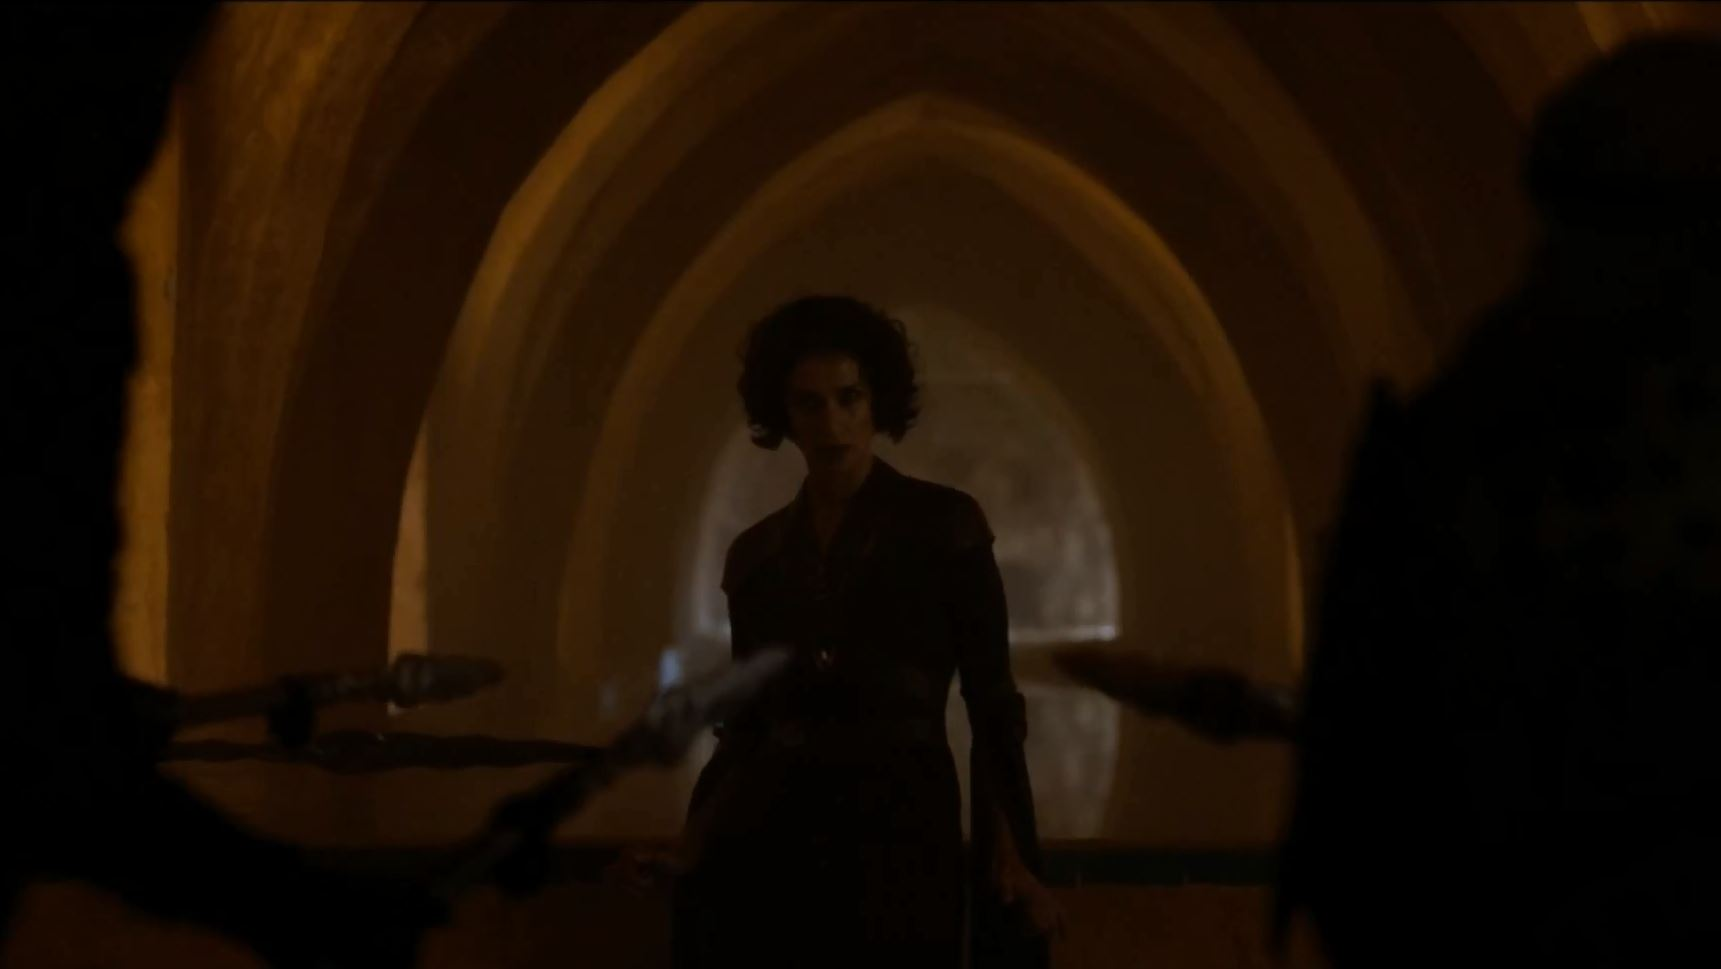 Game of Thrones Season 5 Trailer 2. Indira Varma as Ellaria Sand